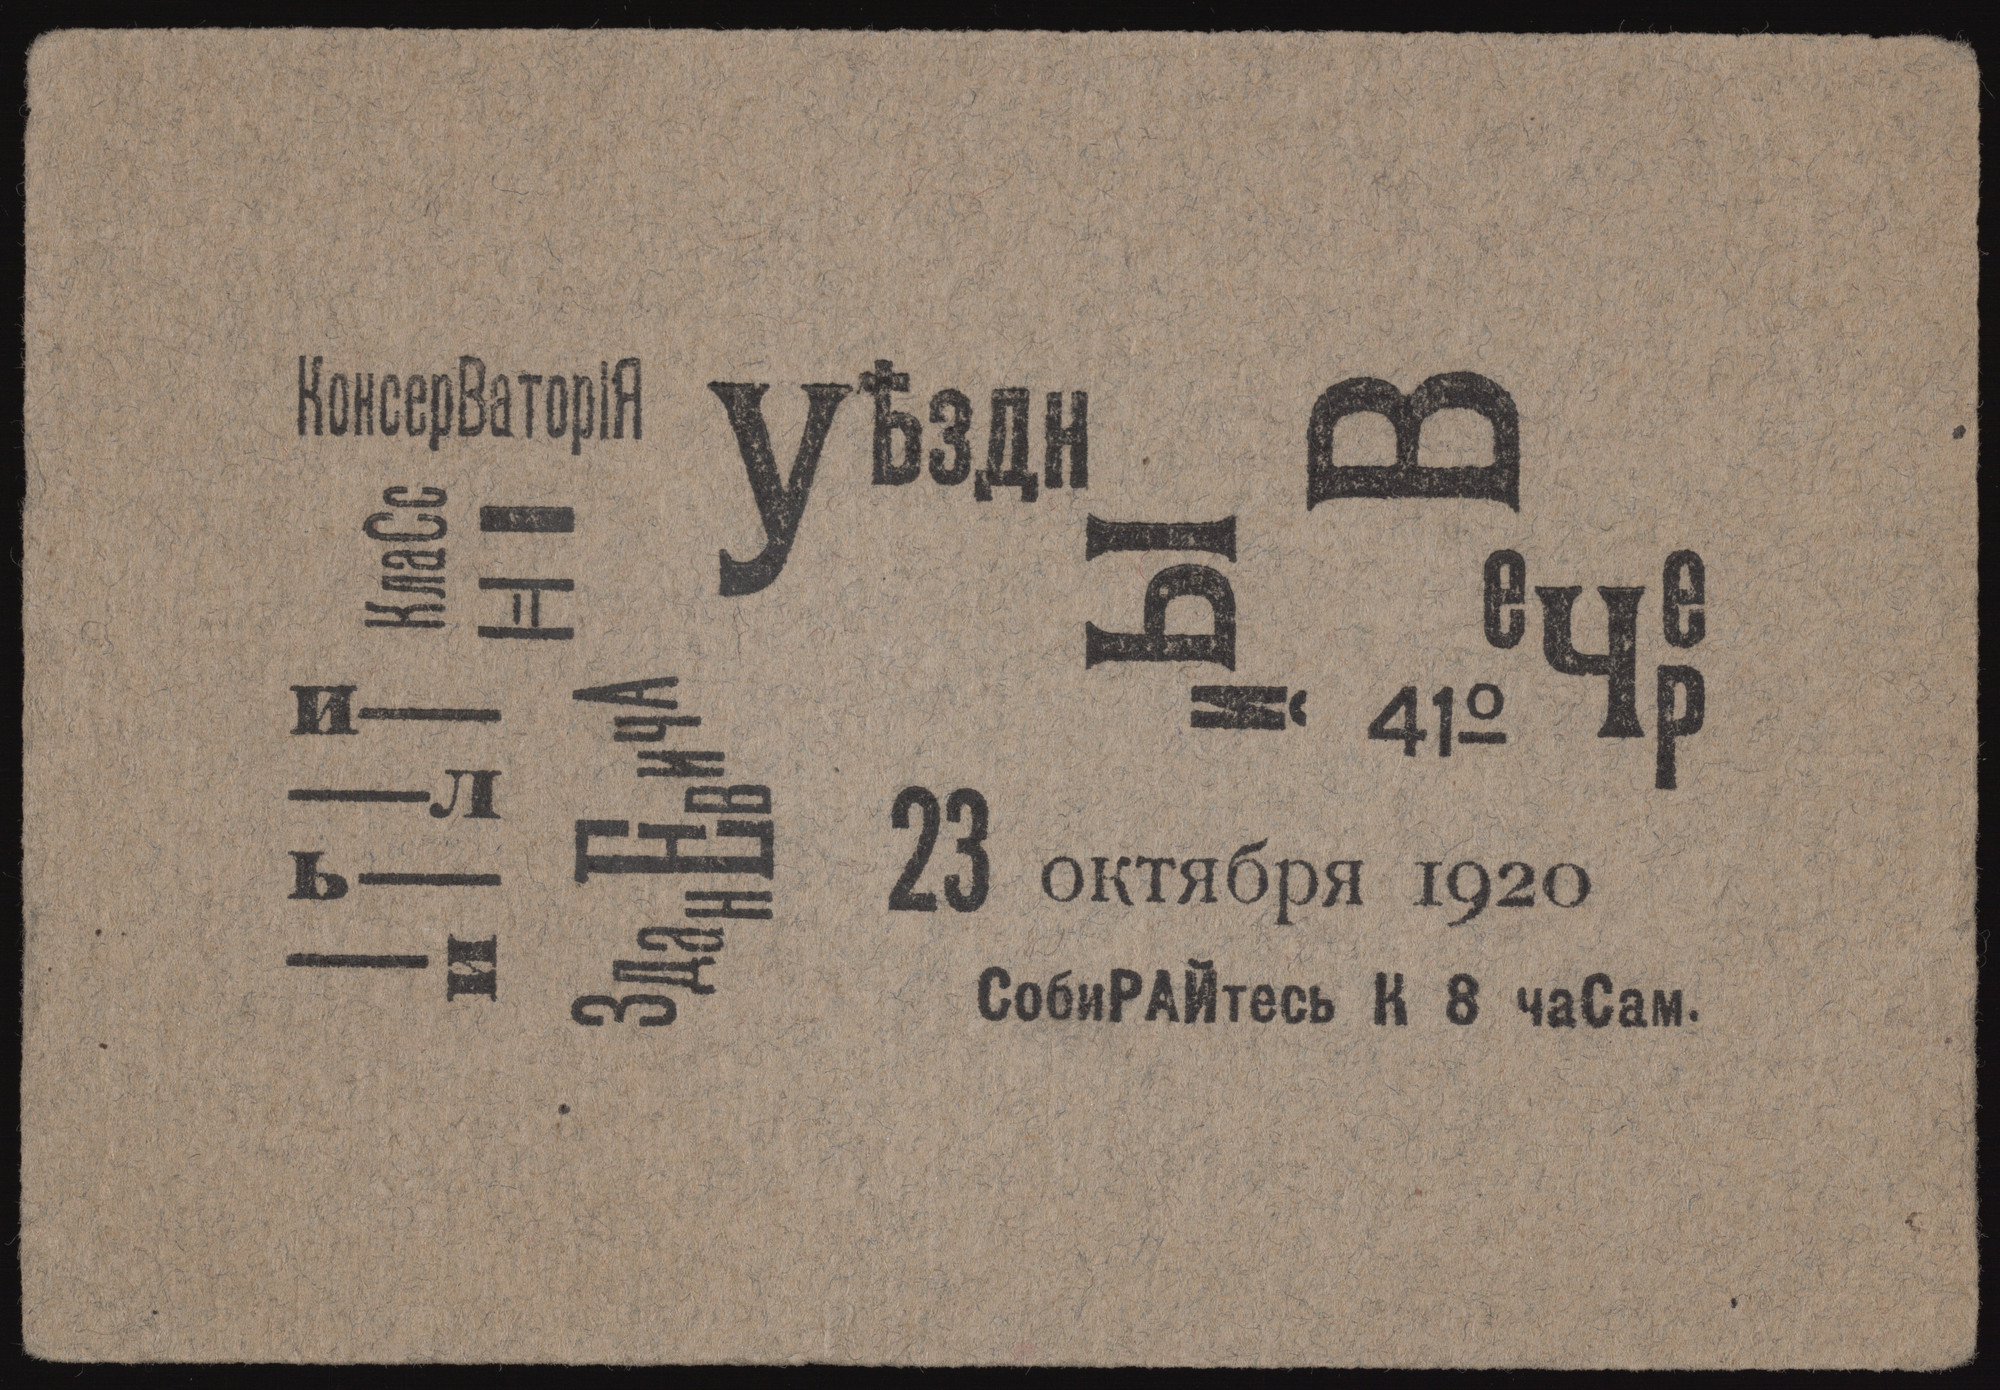 Il'ia Zdanevich. Invitation to a lecture given by Zdanevich, on October 23 in Tiflis. 1920